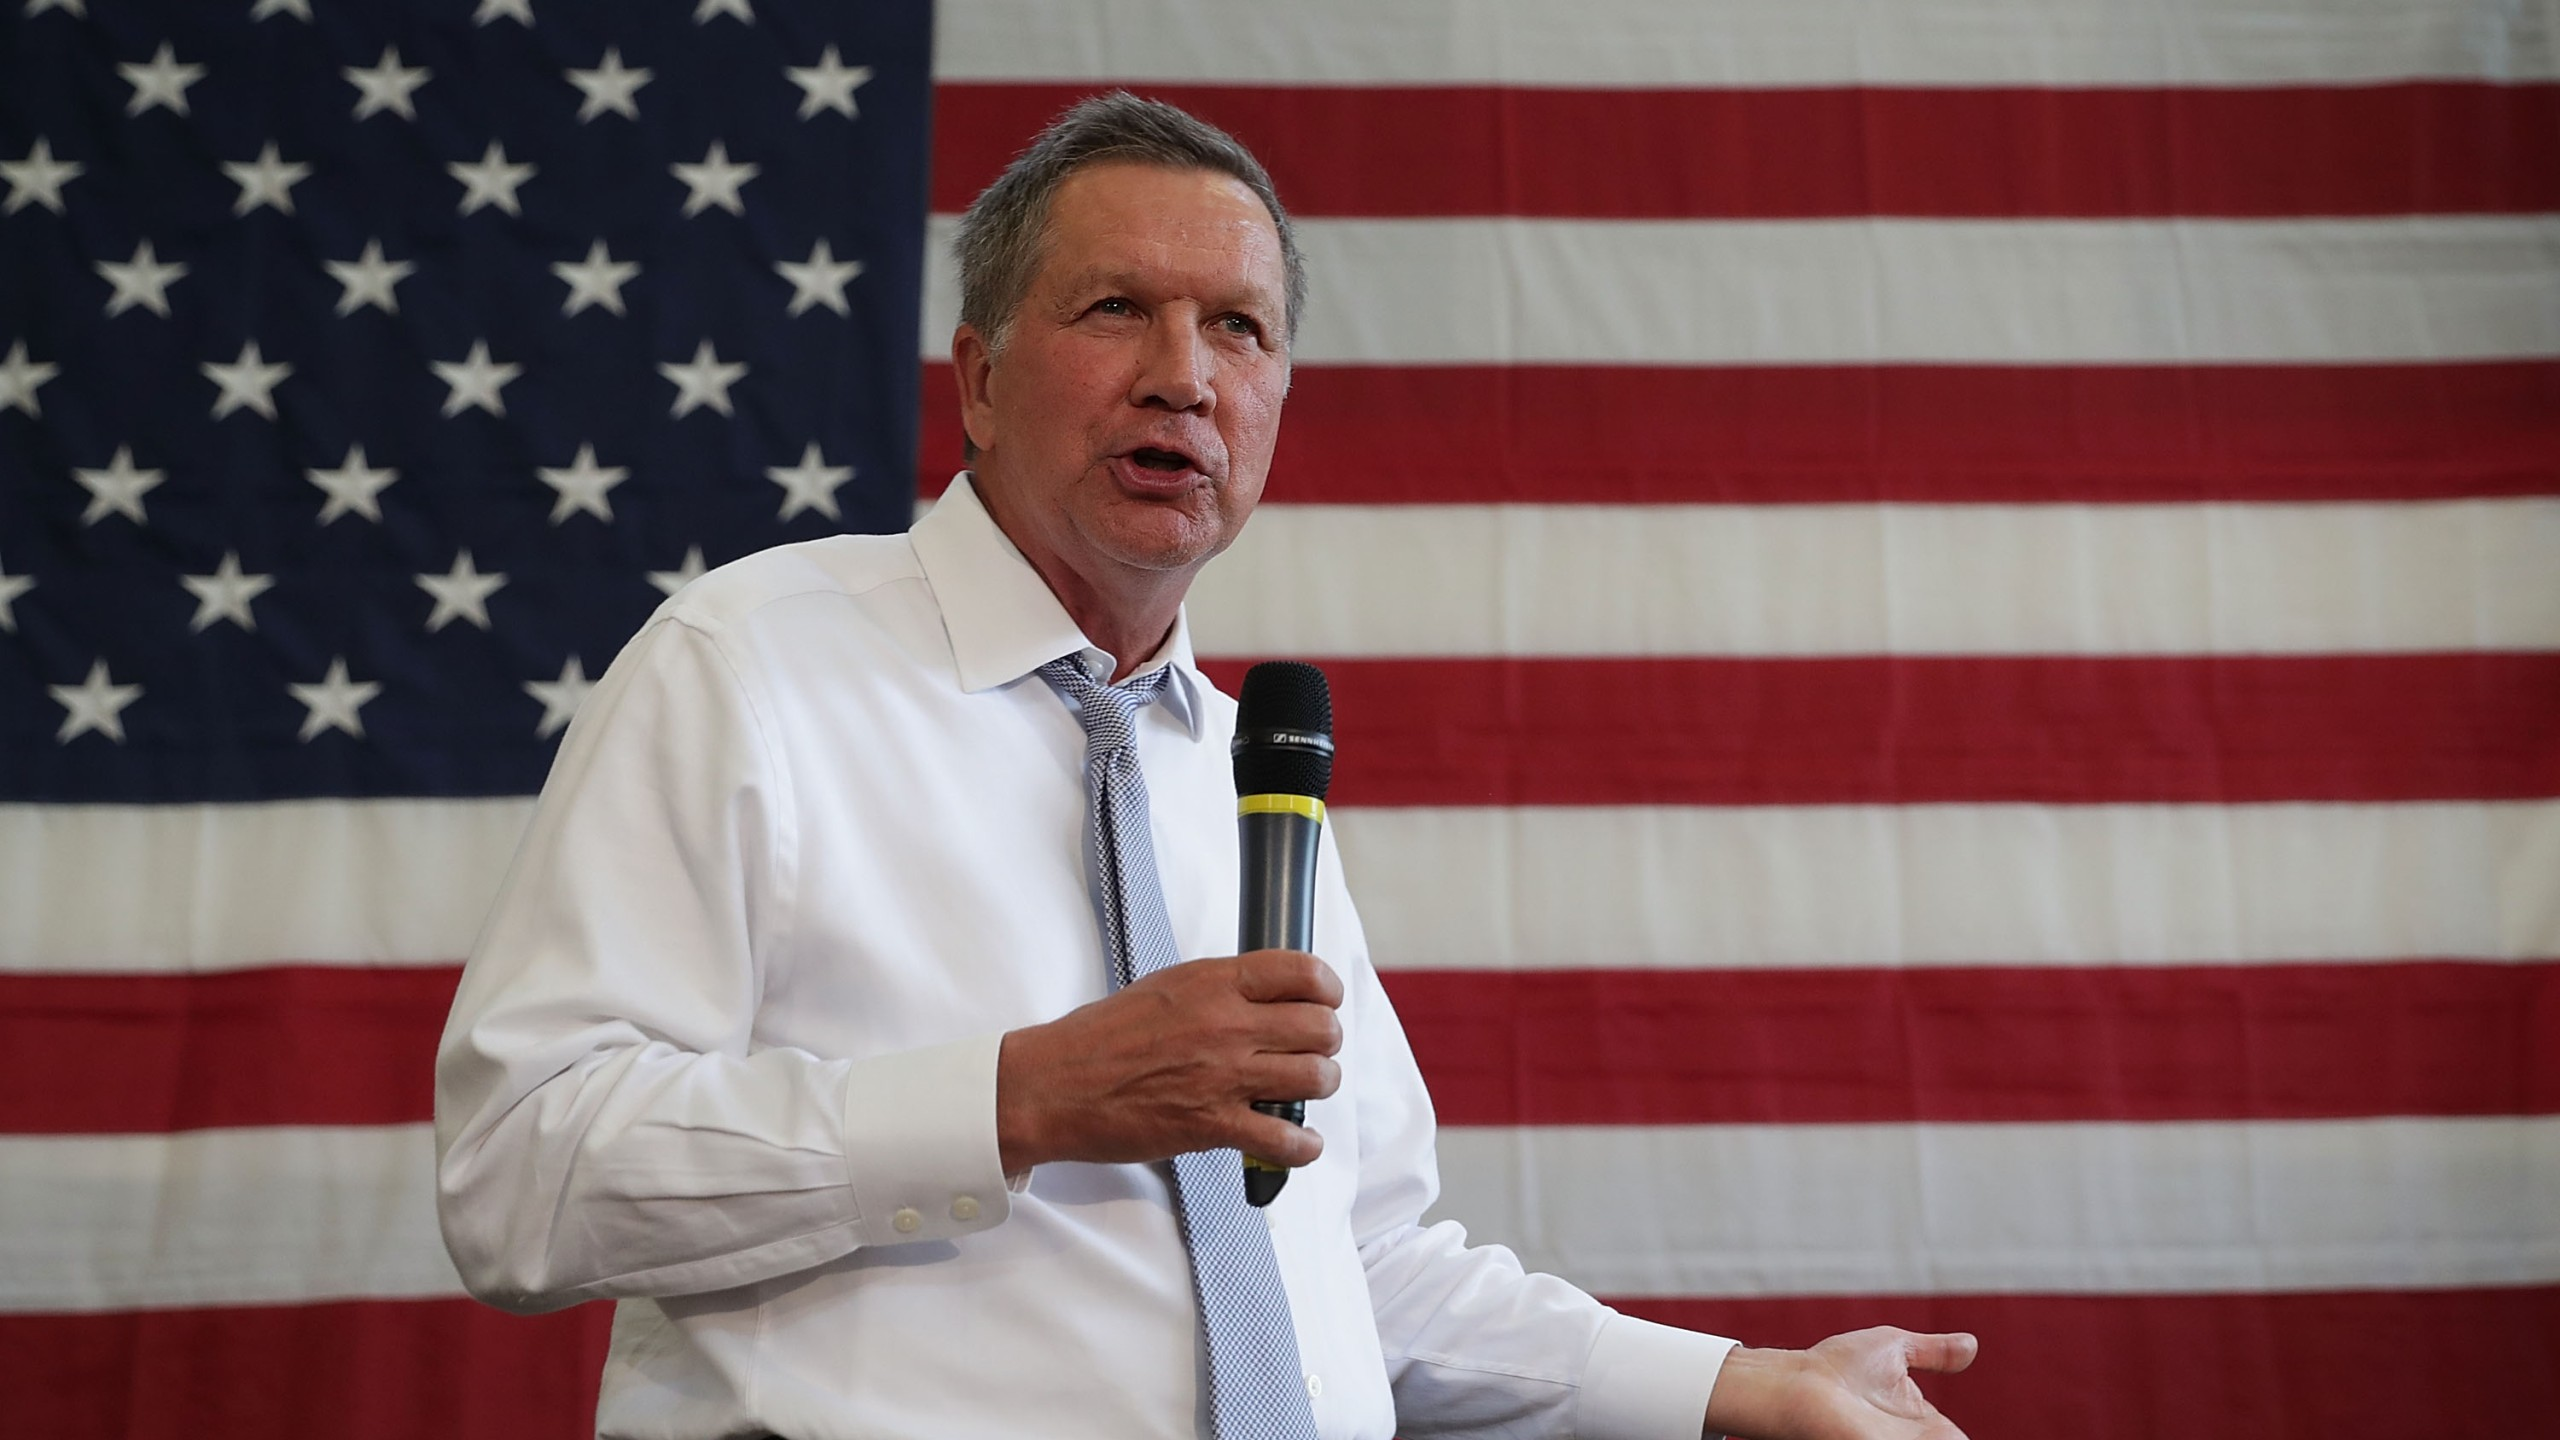 Ohio Governor John Kasich speaks during a campaign event April 25, 2016. in Rockville, Maryland. (Credit: Alex Wong/Getty Images)